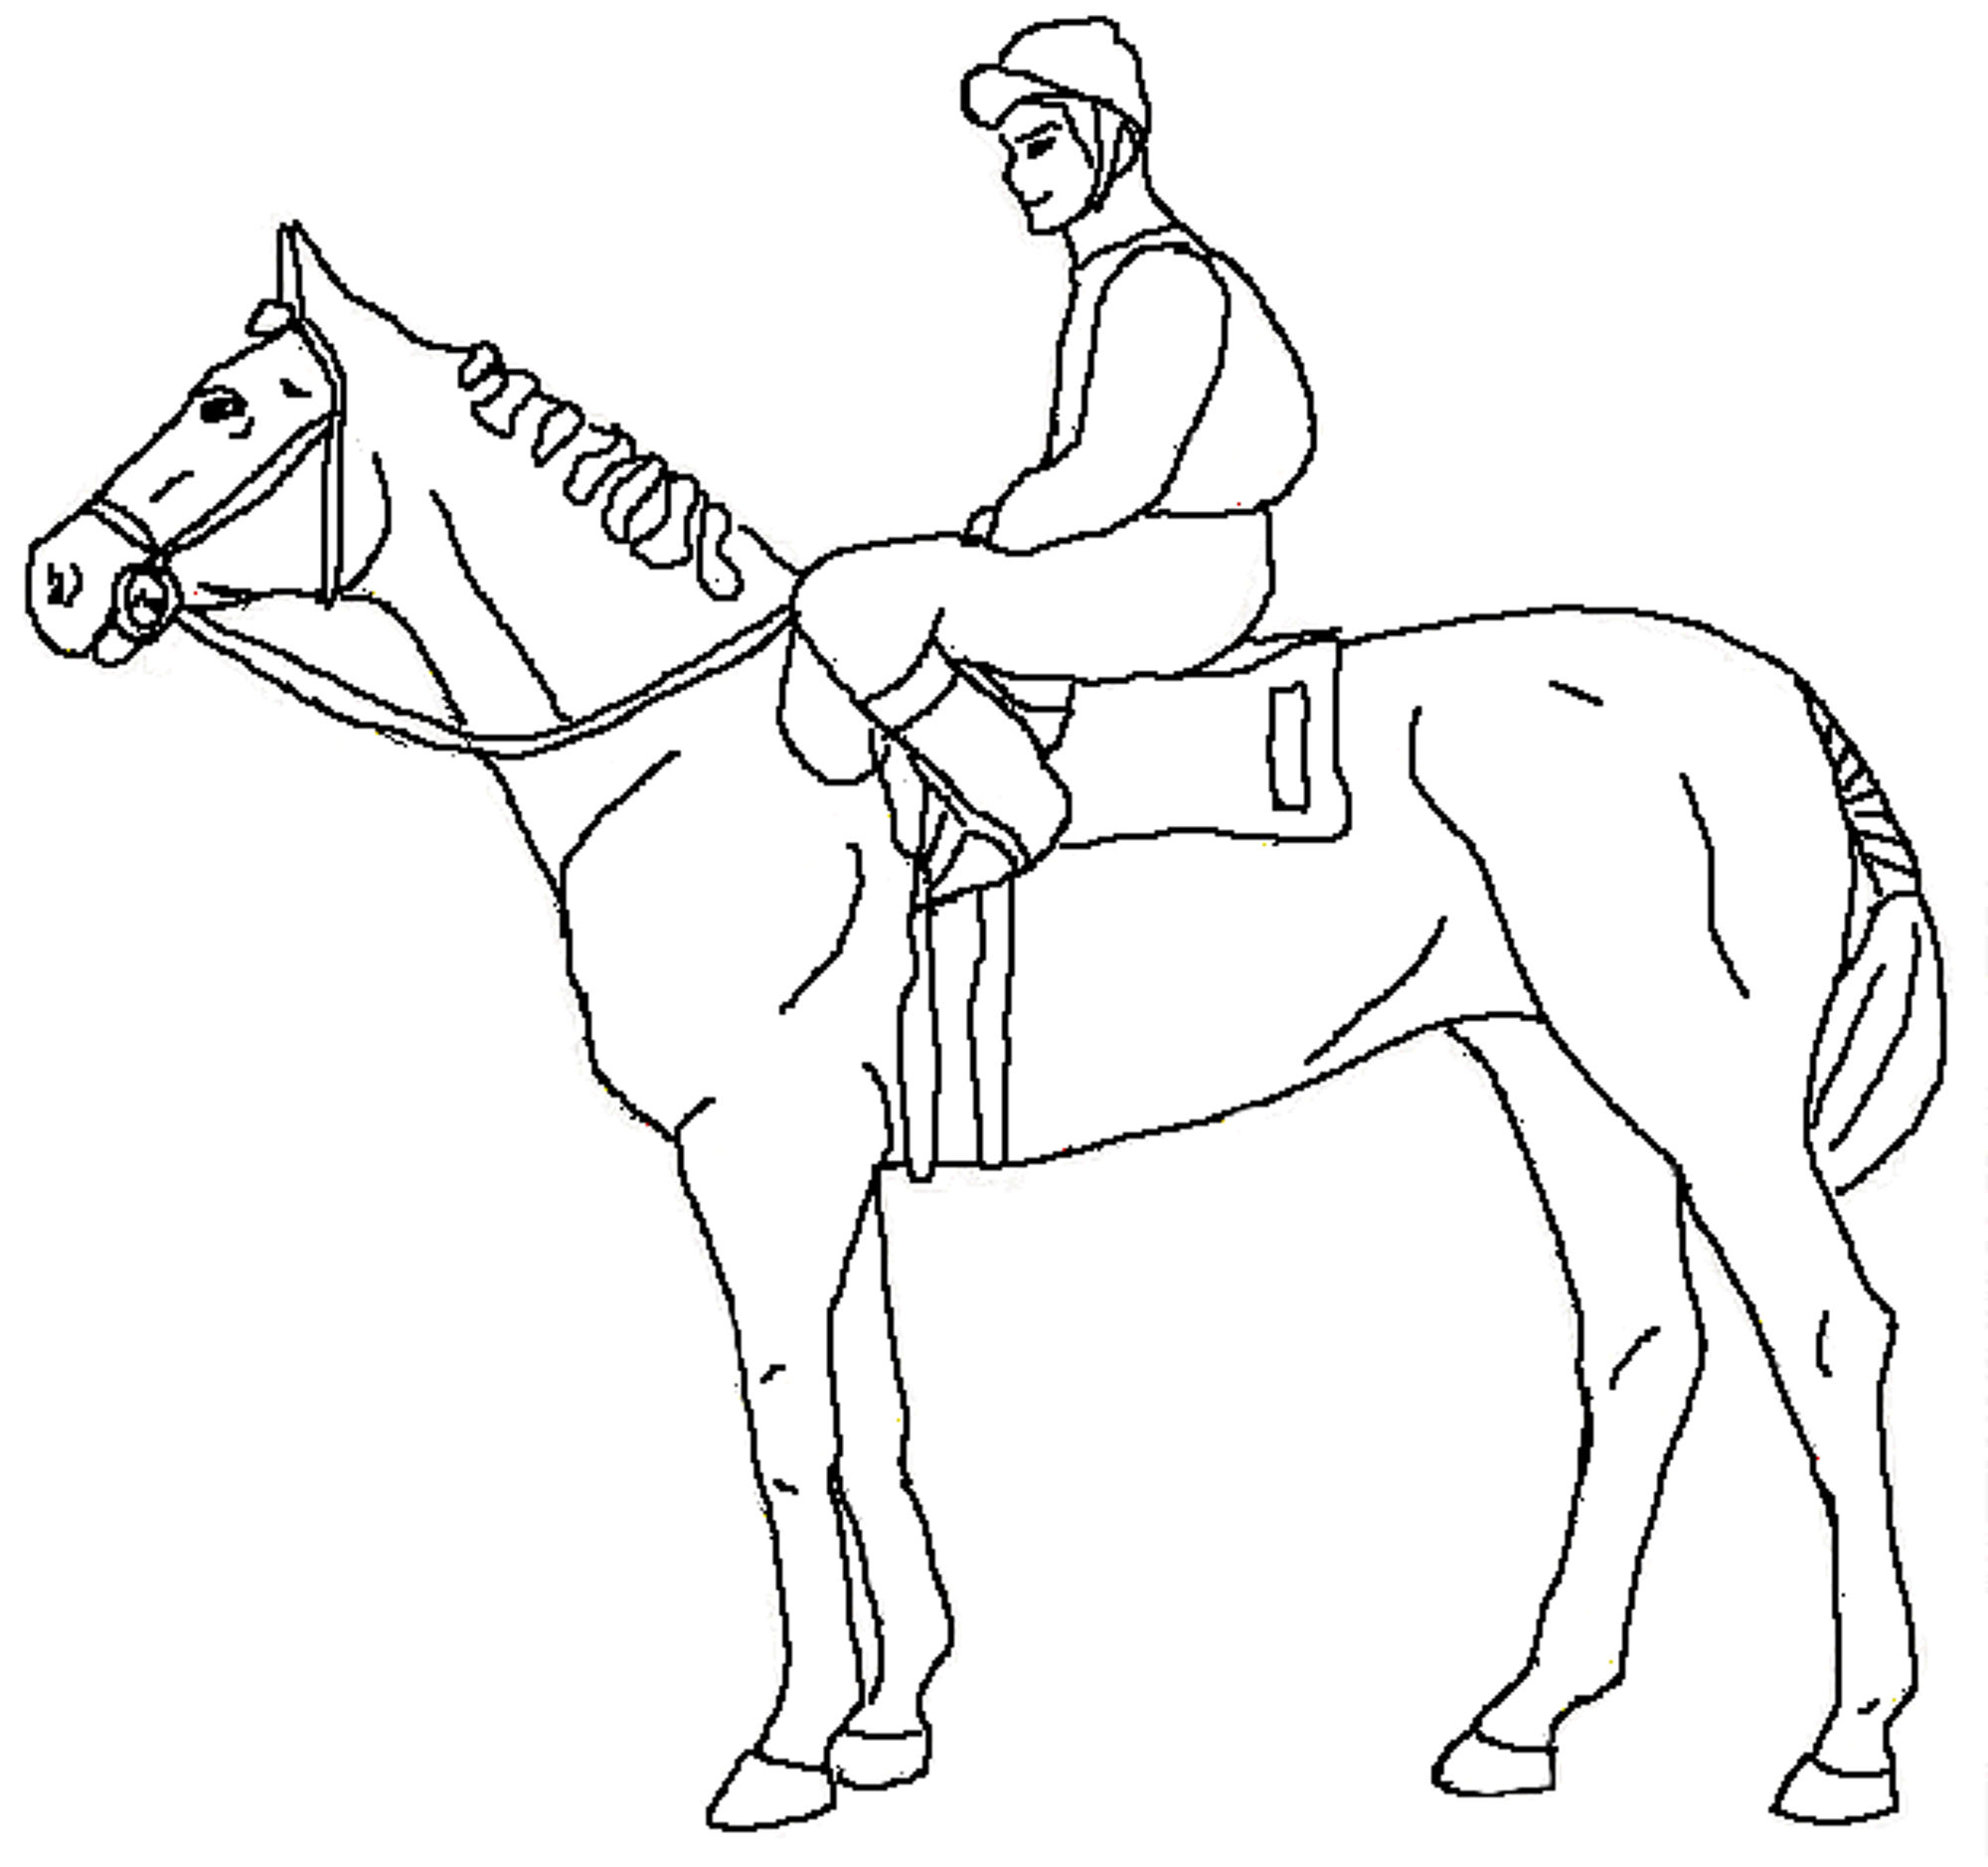 Horses For Drawing at GetDrawings.com | Free for personal use Horses ...